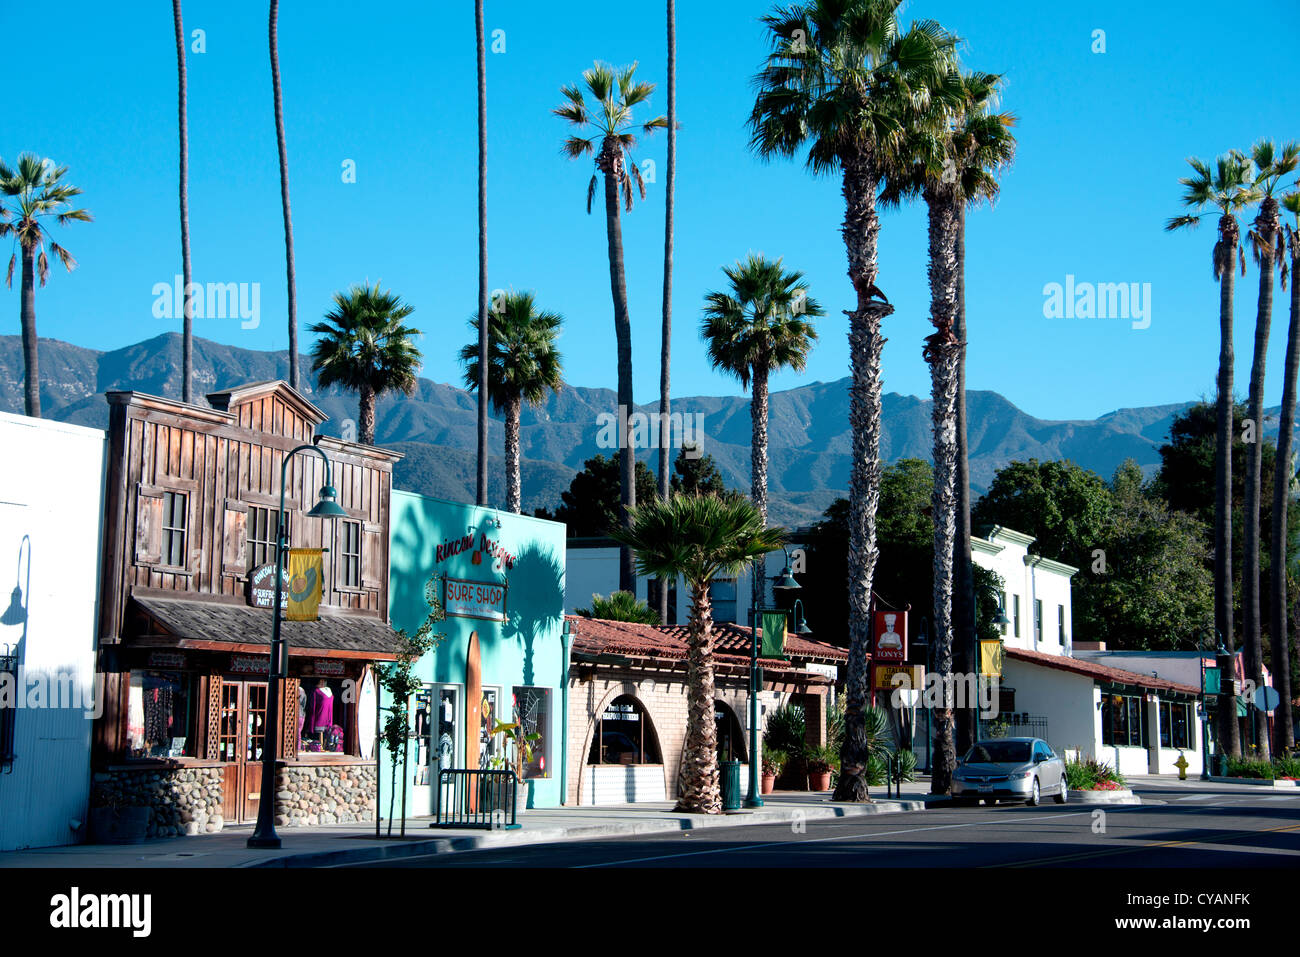 Wallpaper Blue Car Main Street Of Small American Town Of Carpinteria On The